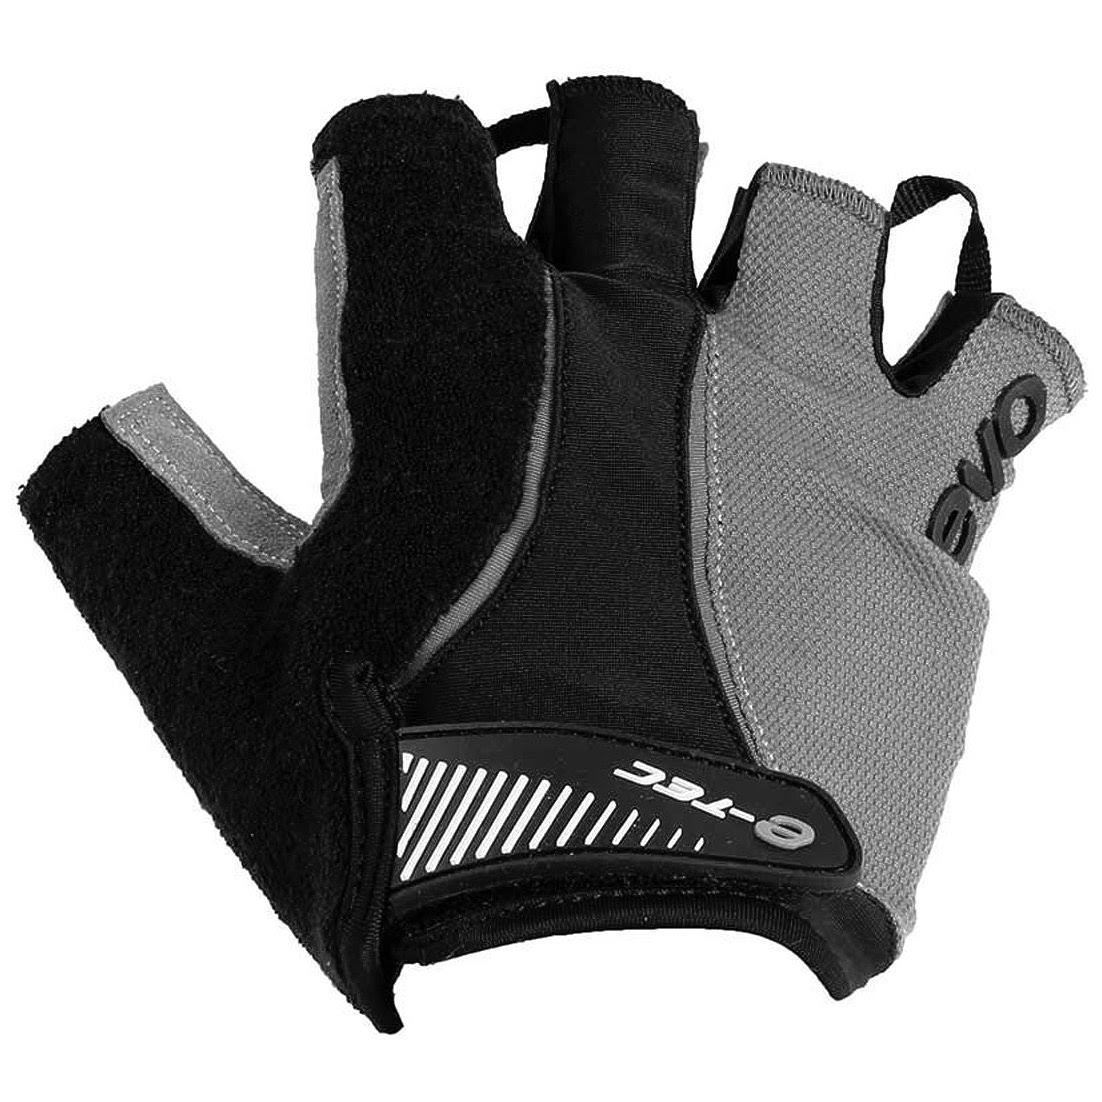 Evo, E-TEC Attack Pro Gel, Gloves, Black/Gray, L